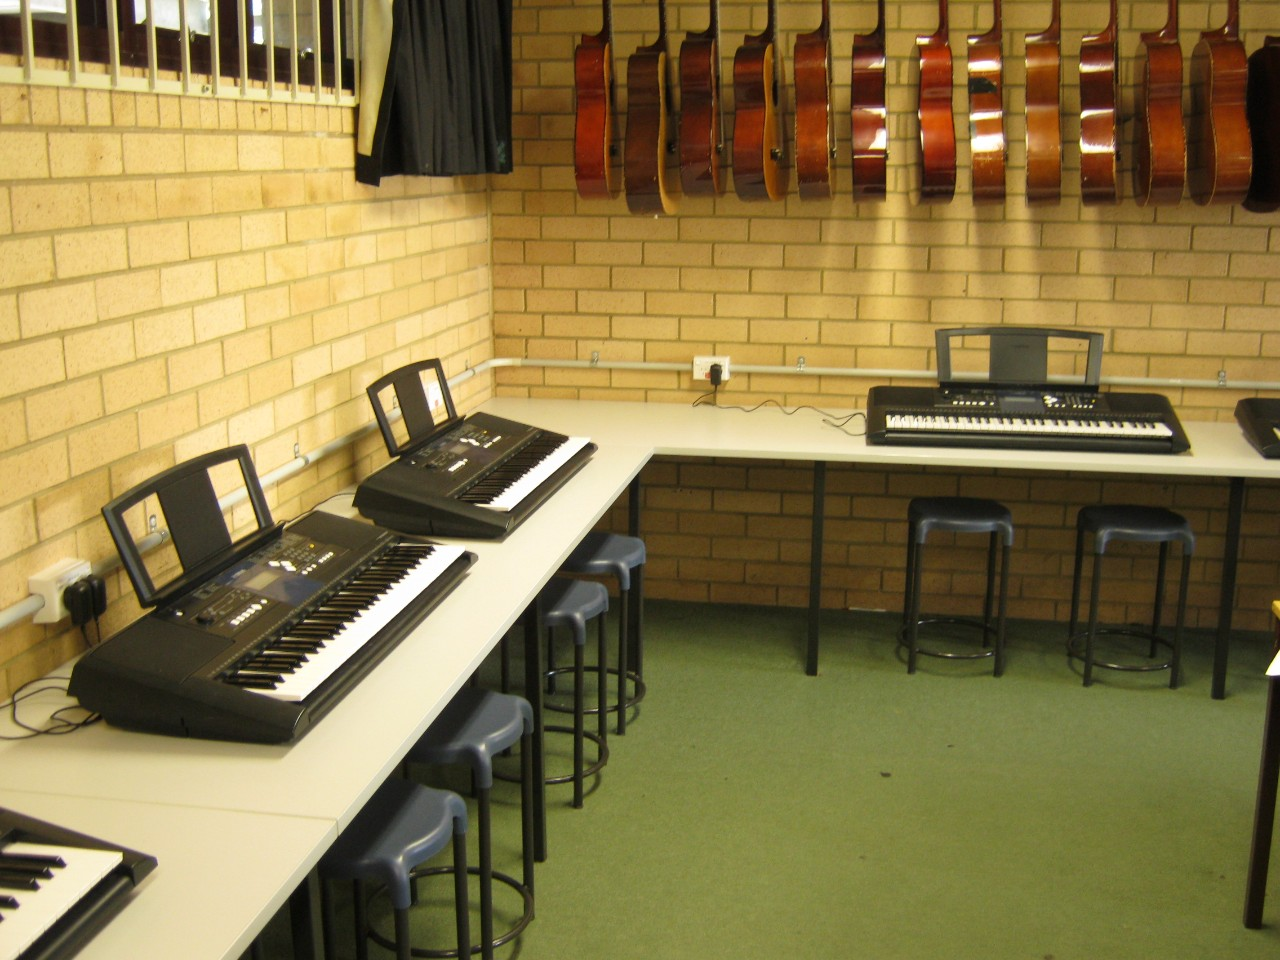 Music room with multiple guitars hanging and keyboard pianos around the outside.